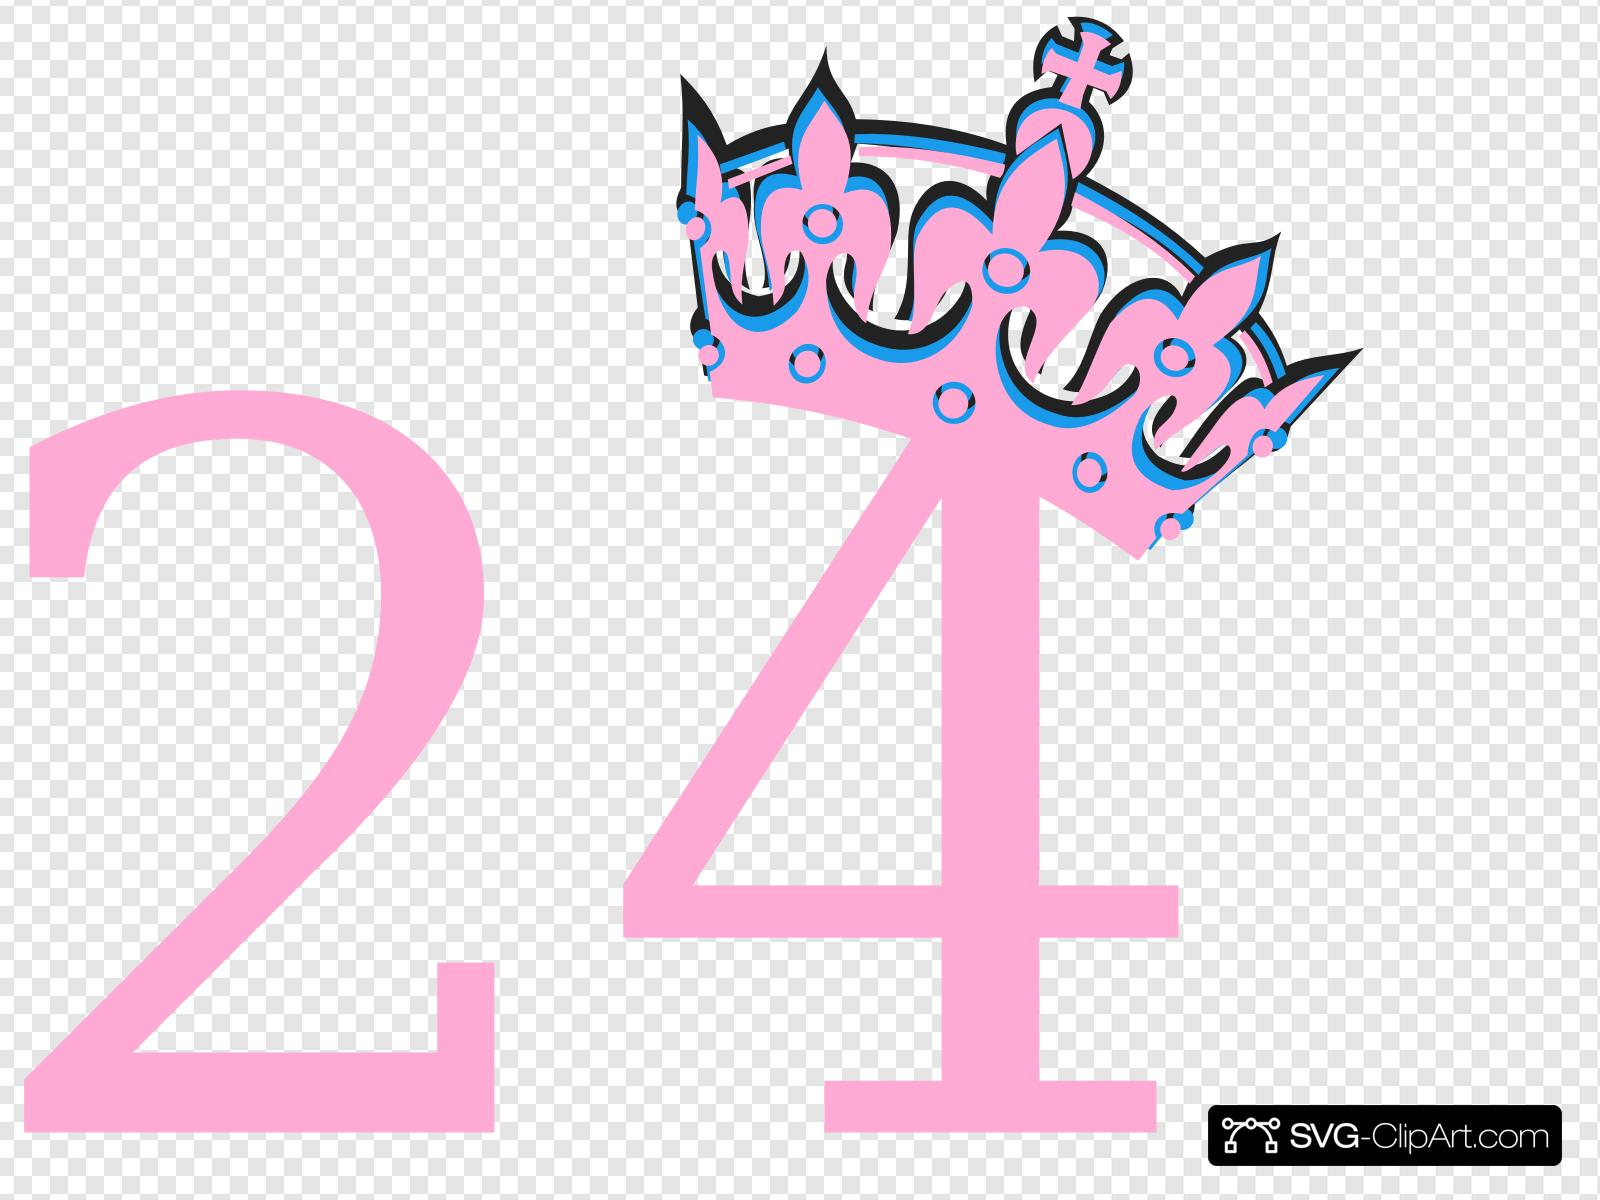 Pink Tilted Tiara And Number 24 Clip art, Icon and SVG.